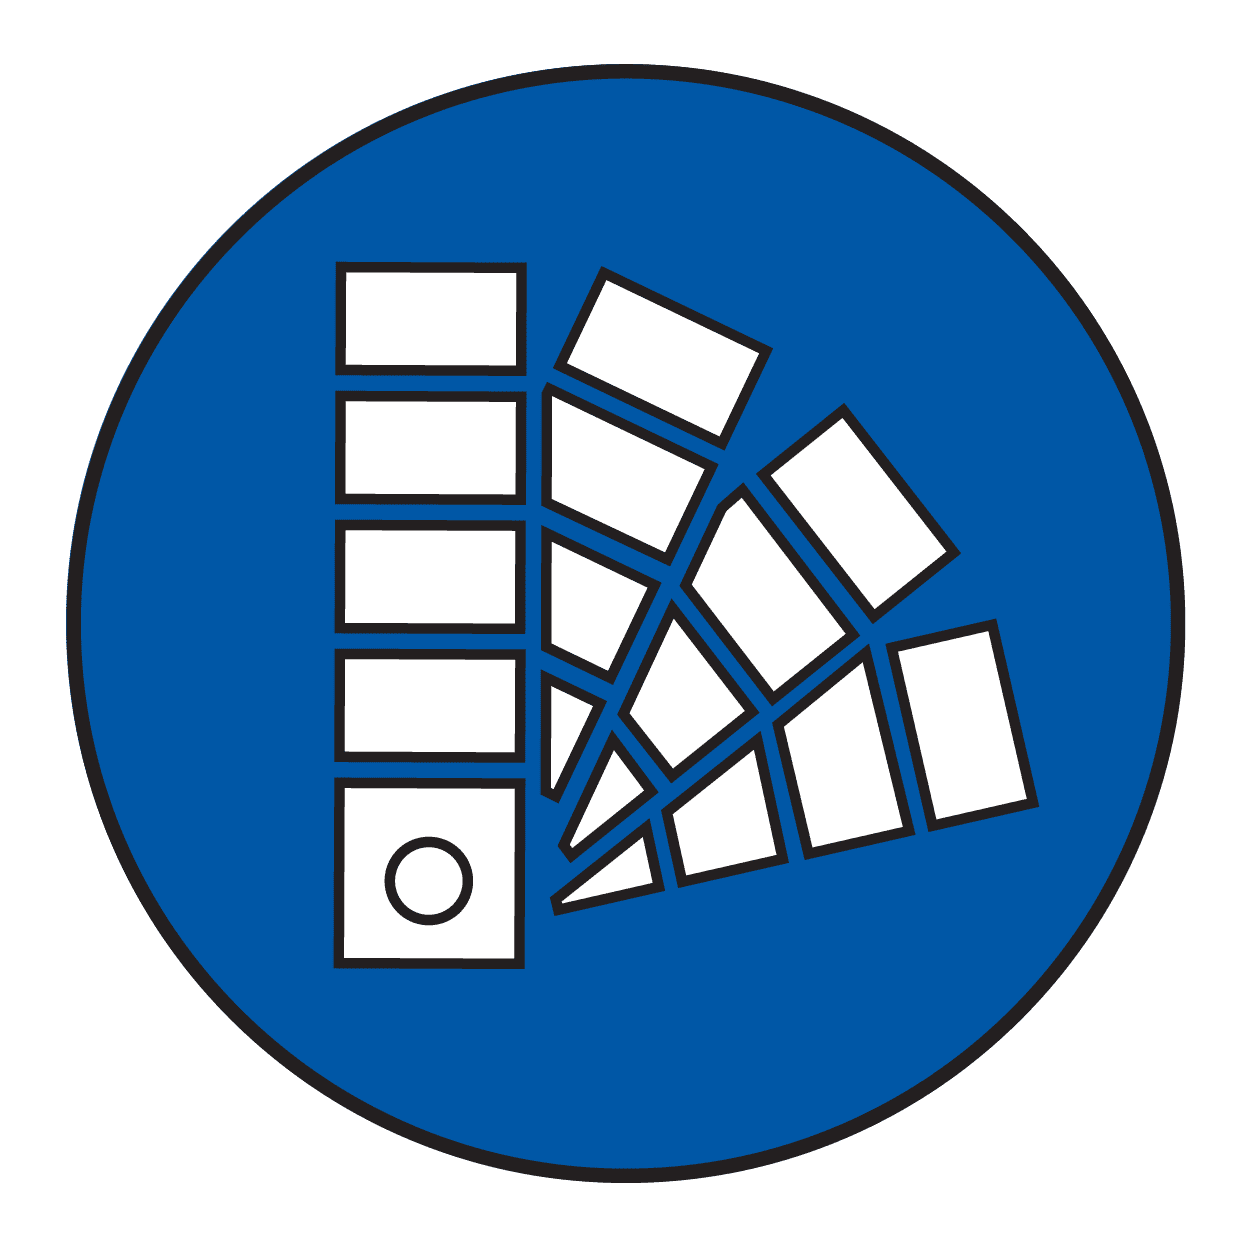 blue icon of paint color chips.